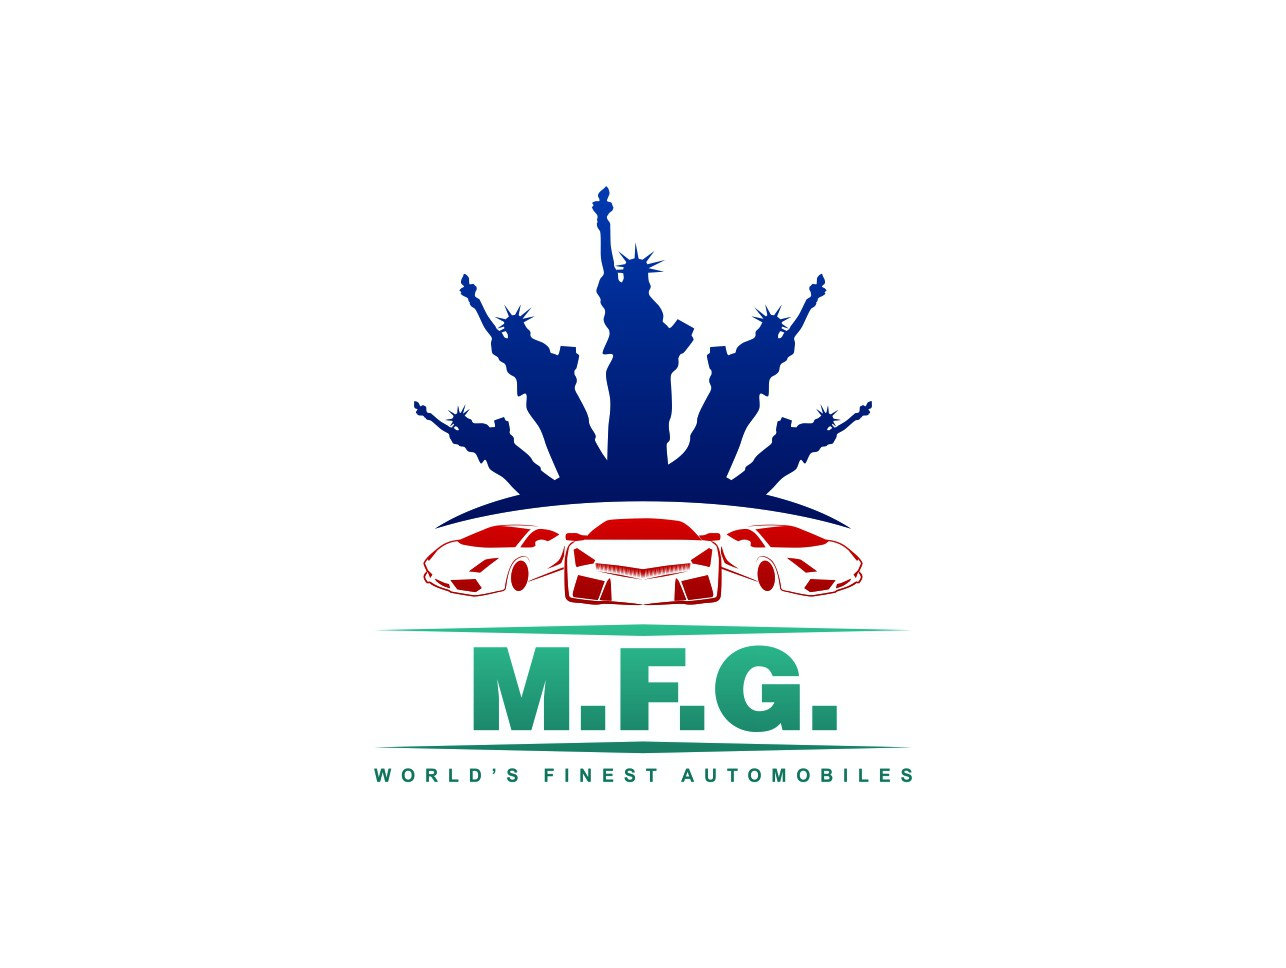 LOGO for M.F.G. World's Finest Automobiles